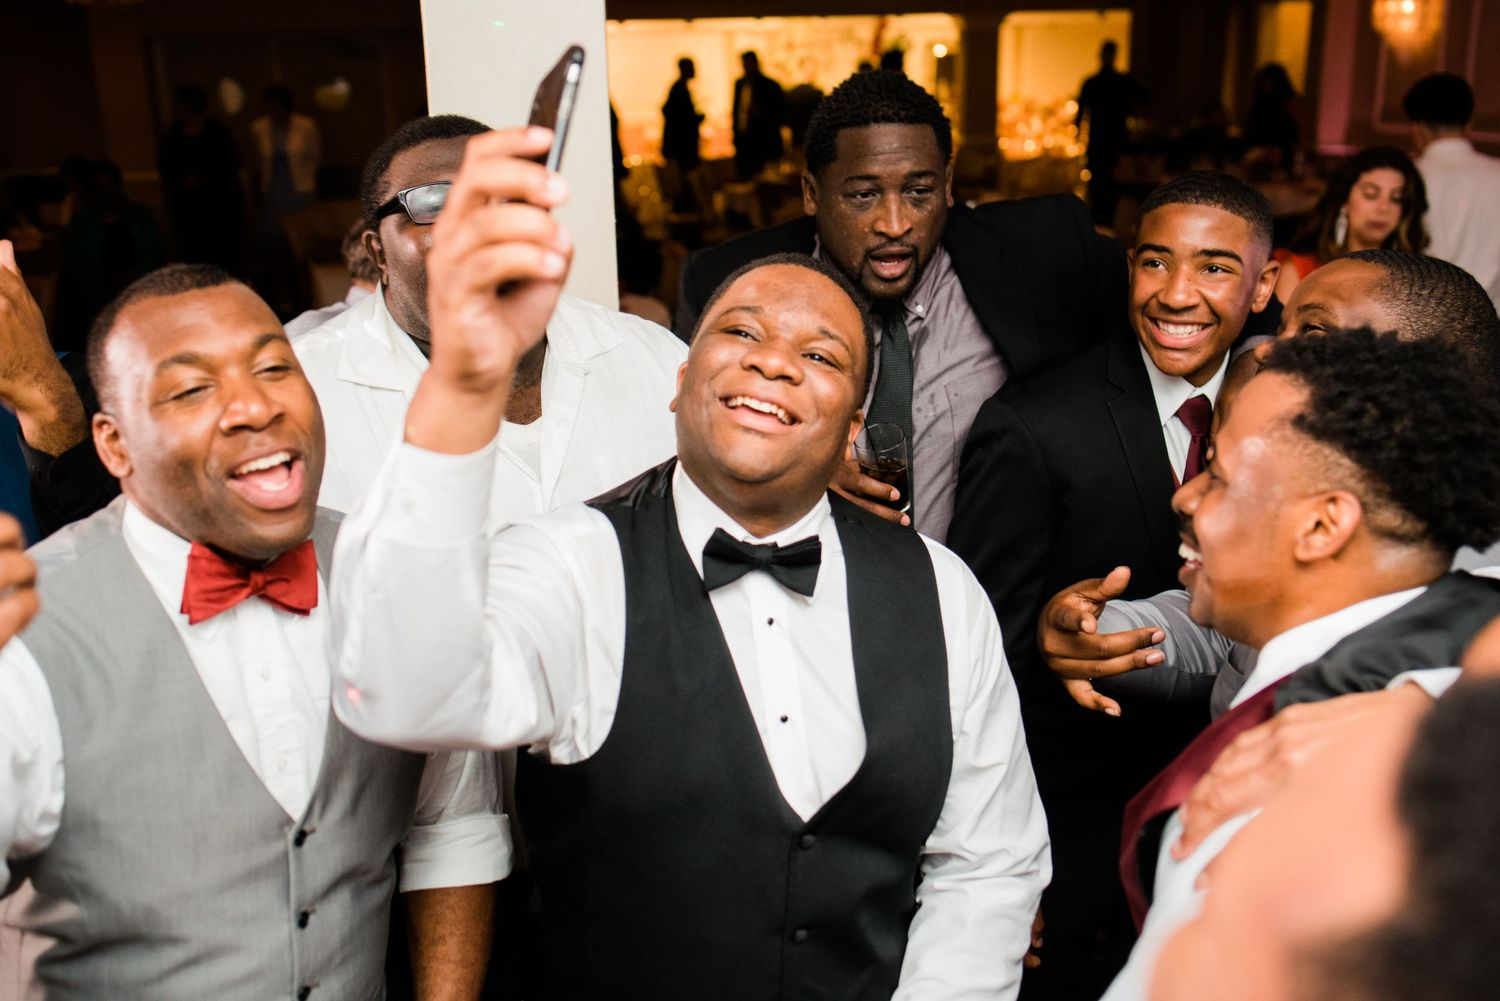 groom taking a selfie with this friends on the dance floor